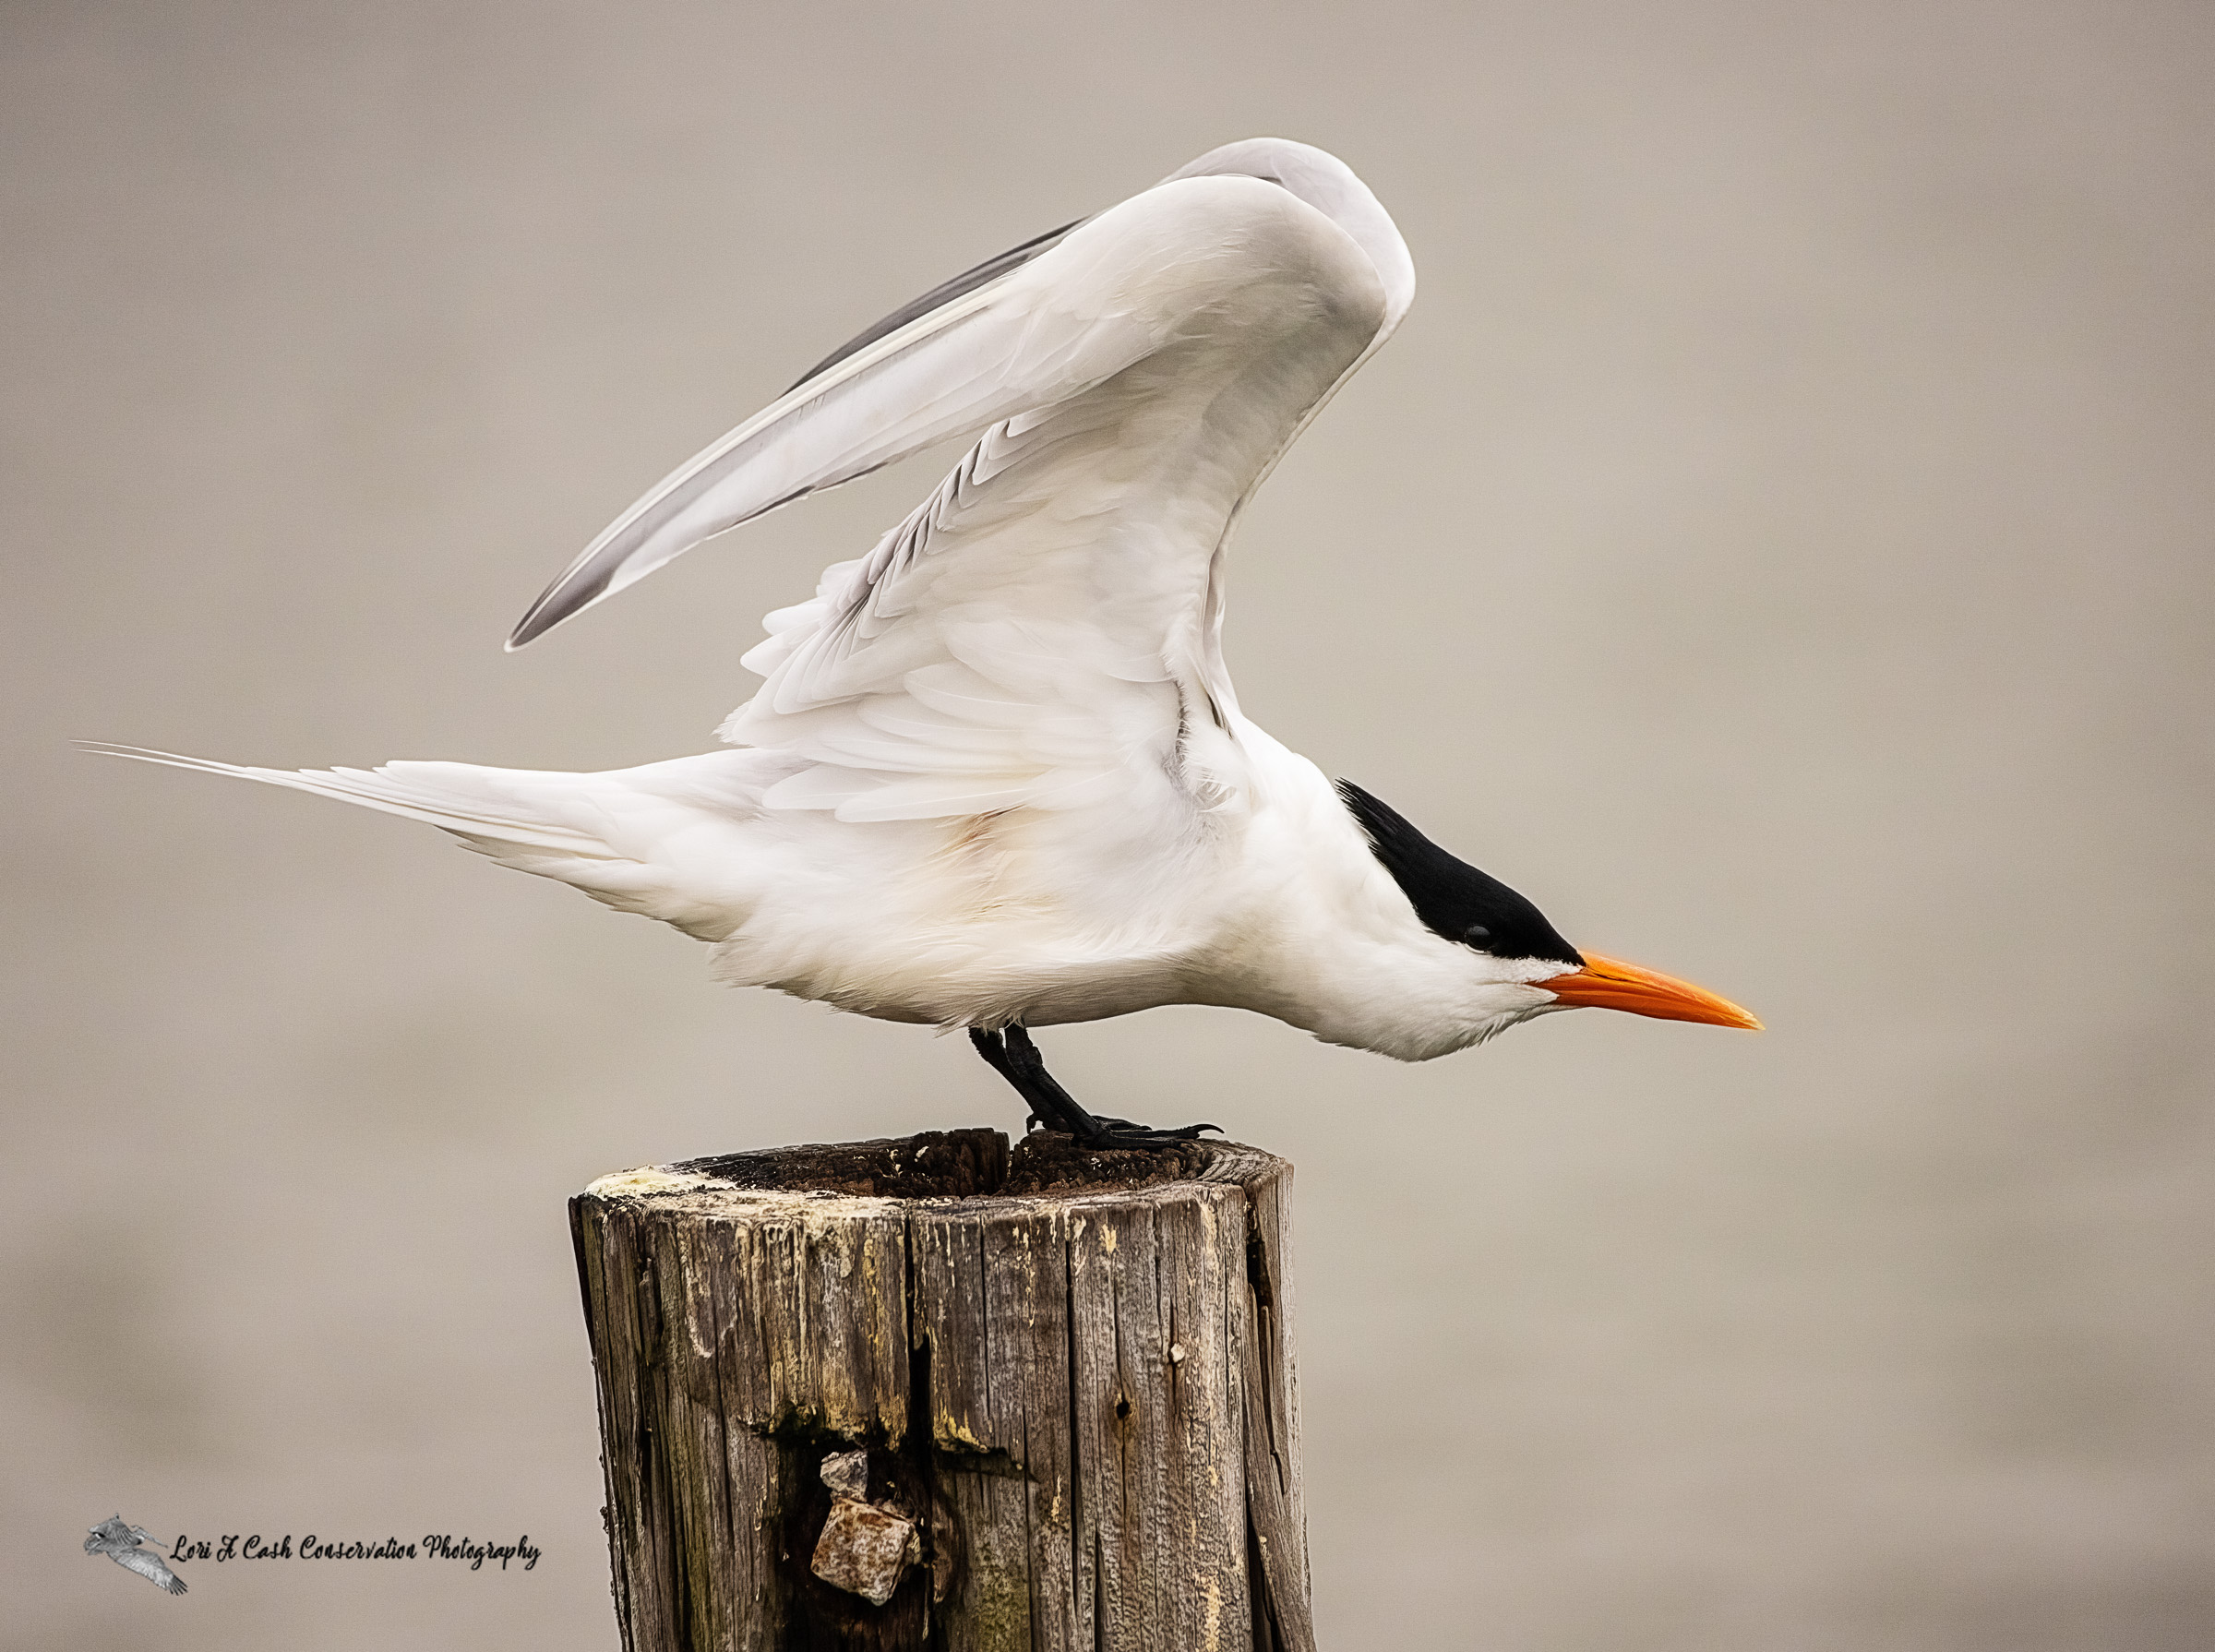 Royal tern (Thalasseus maximus) beginning to stretch its wing while standing on a post at Phoebus Waterfront Park in Hampton, Virginia.